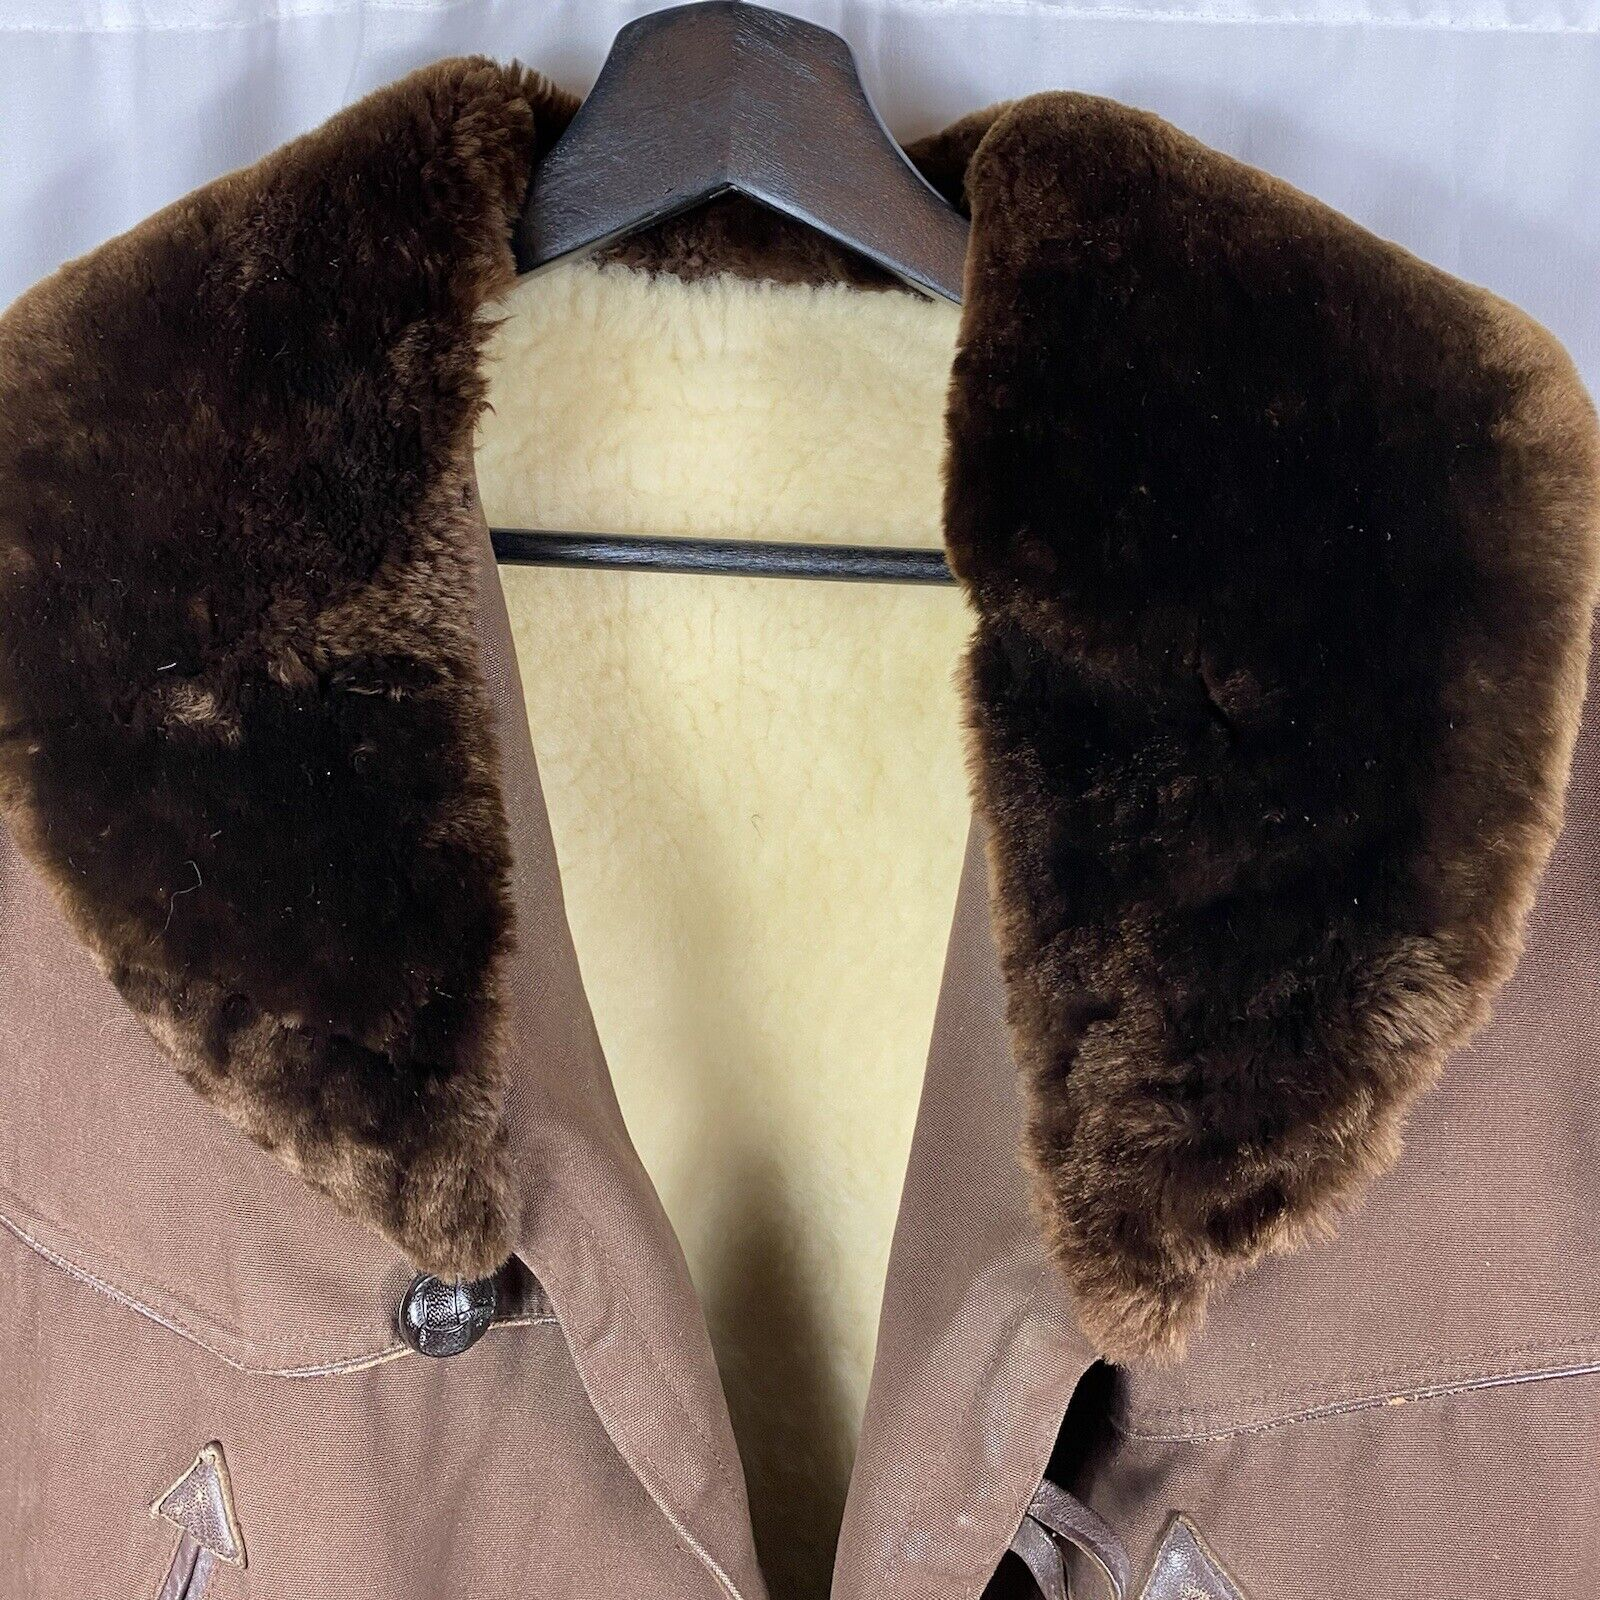 Vintage 1950s French Workwear Canadian Winter Jac… - image 2